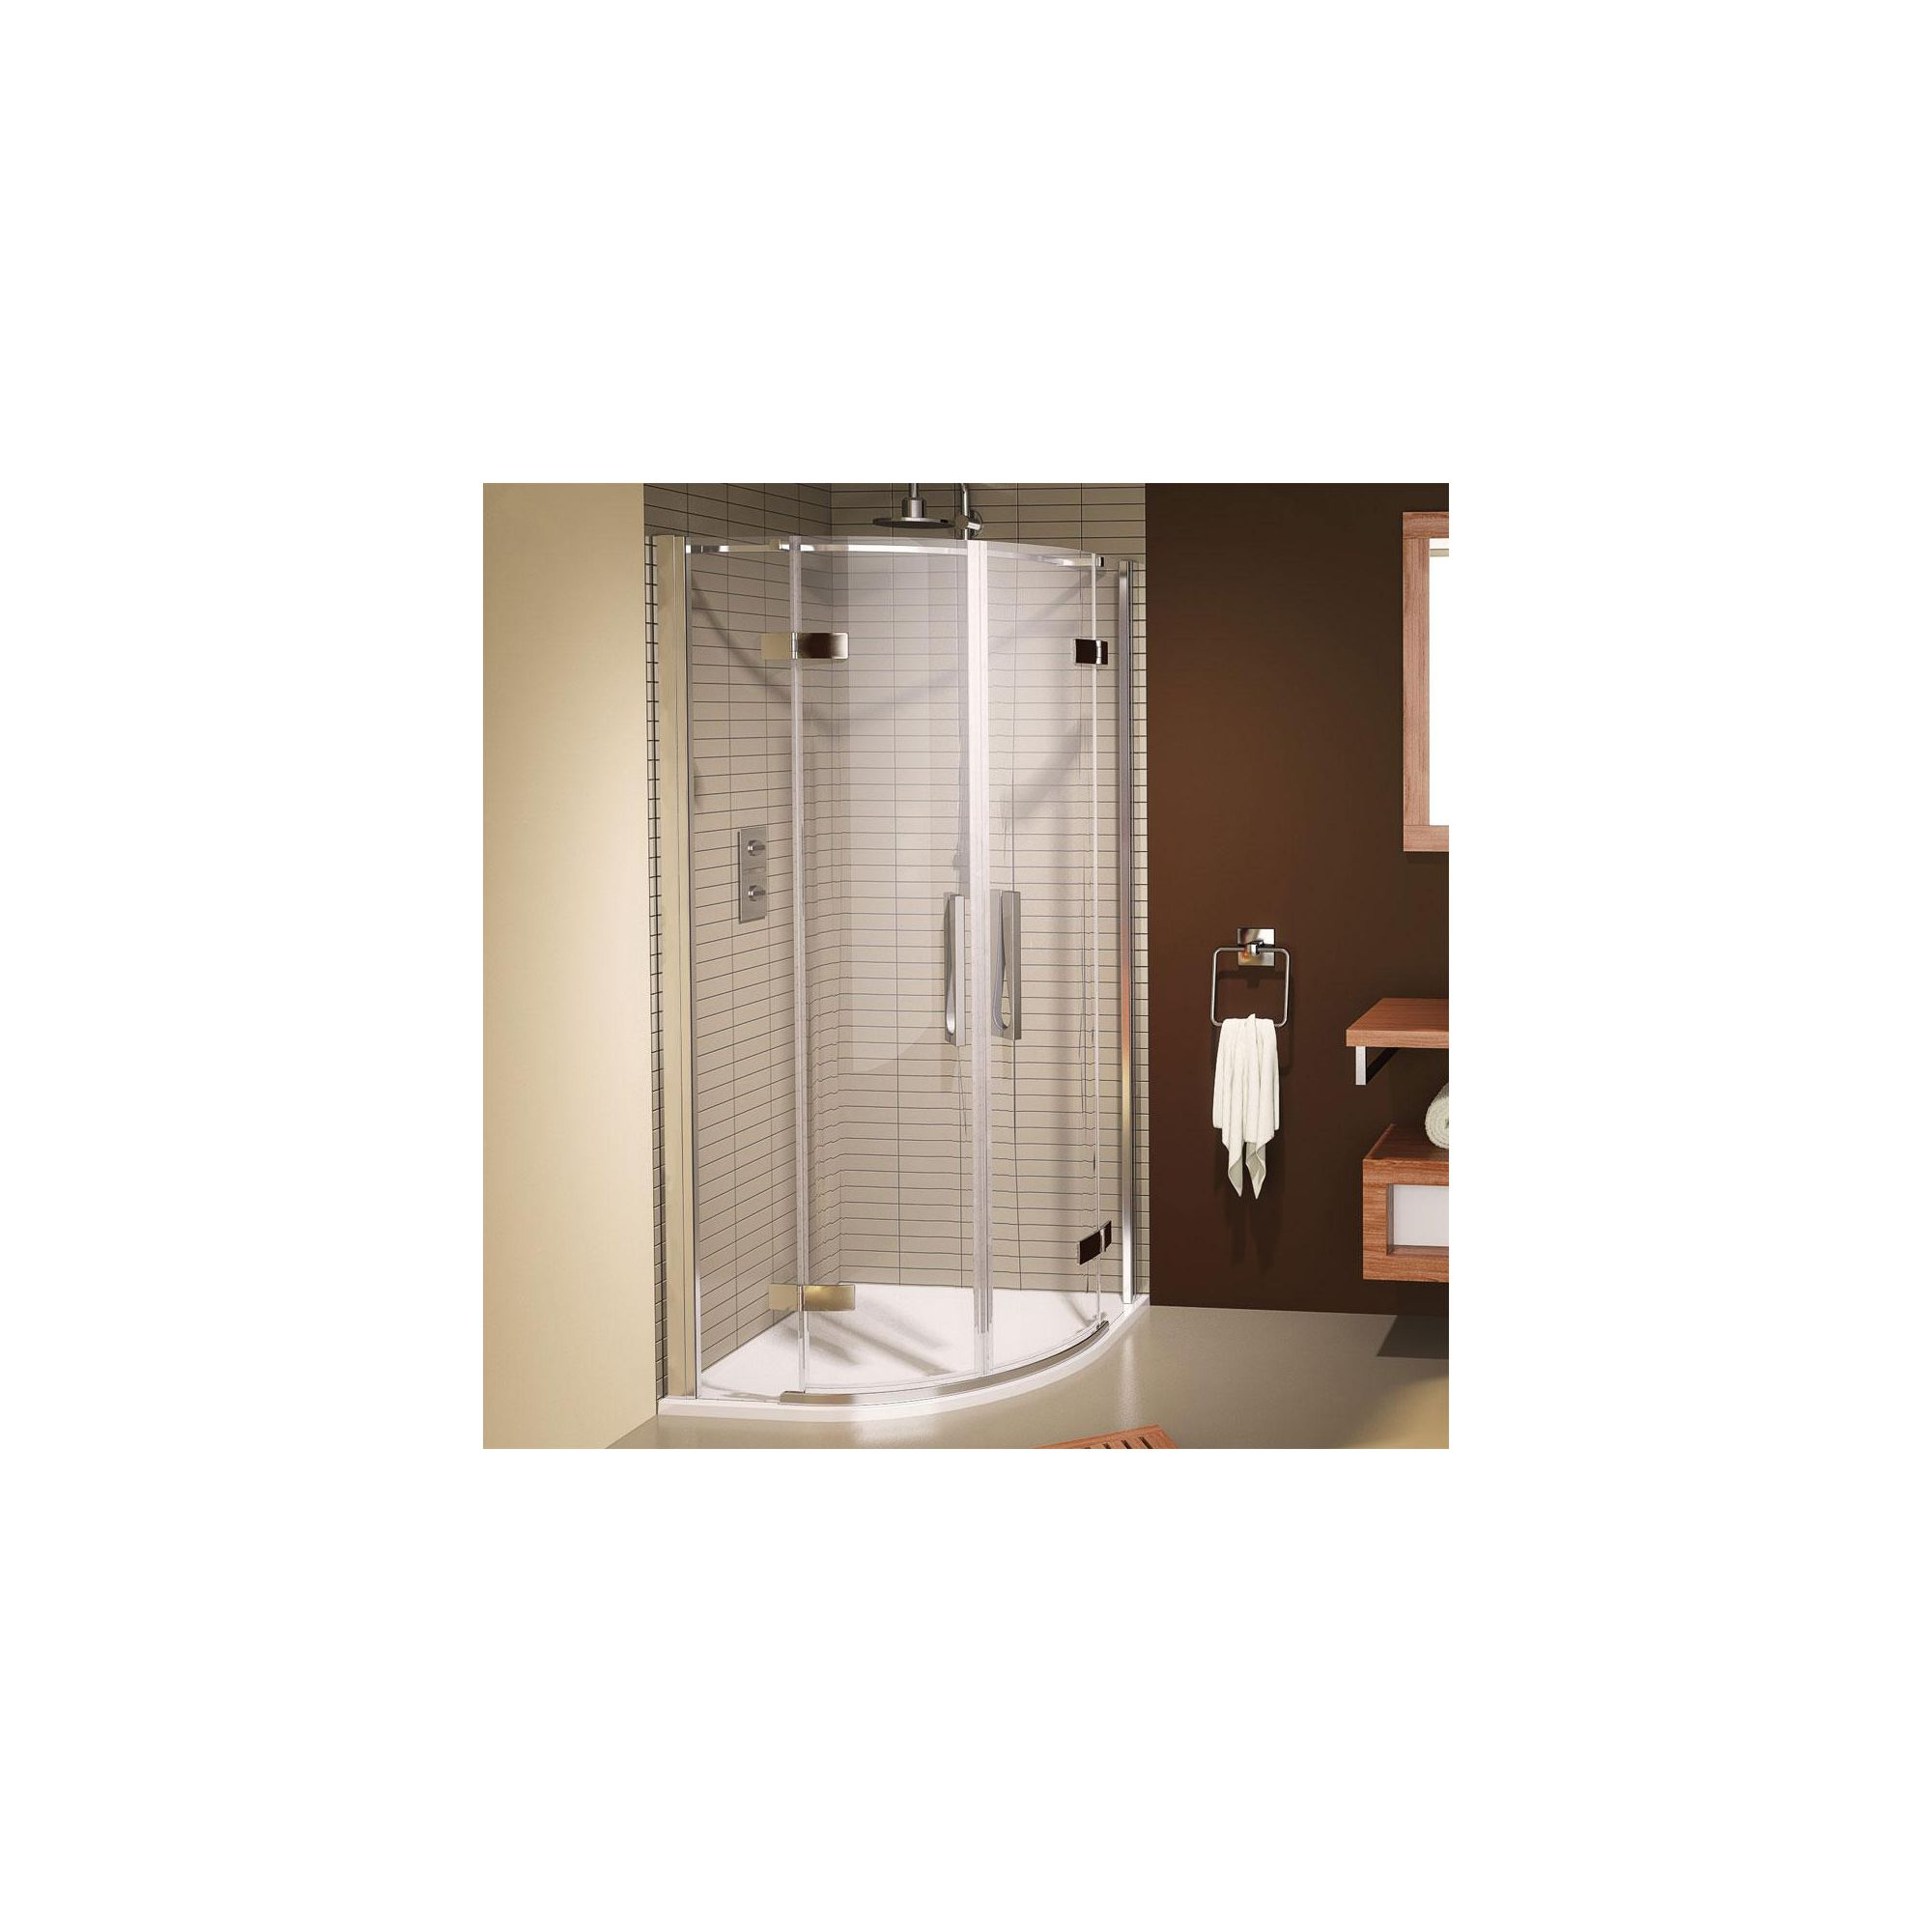 Aqualux AQUA8 Hinge Quadrant Shower Door, 800mm x 800mm, Polished Silver Frame, 8mm Glass at Tescos Direct